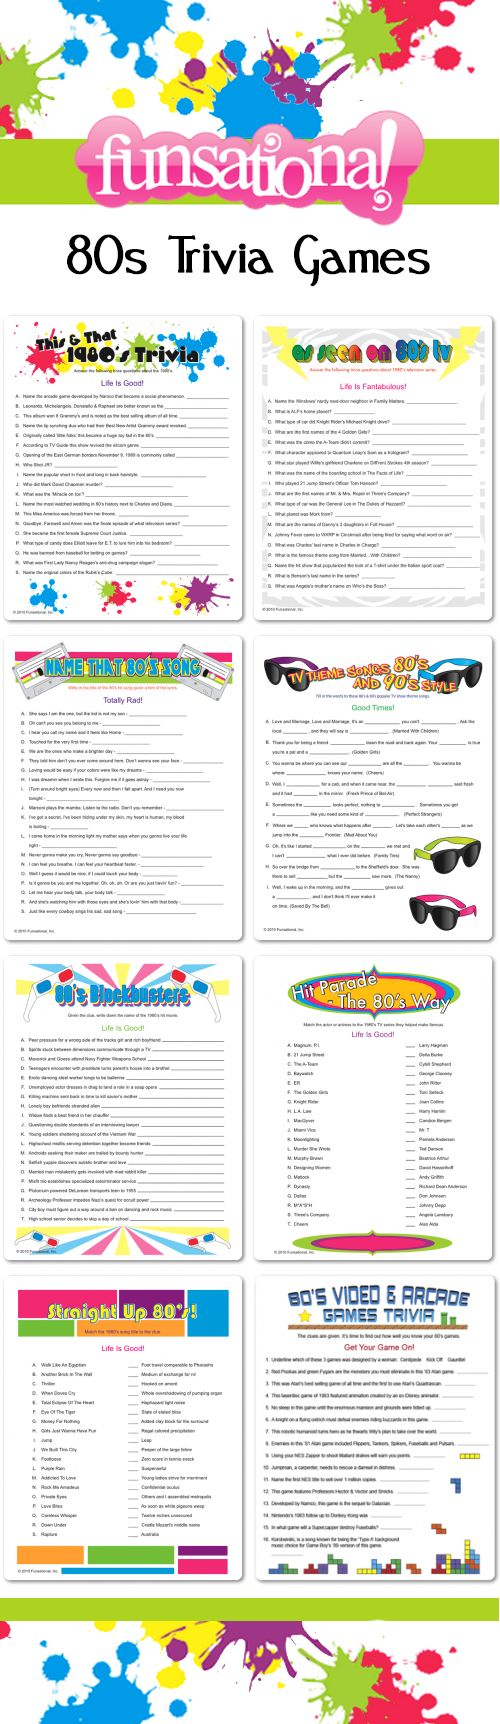 80s Trivia Games from Funsational. Personalize each one! #partygames